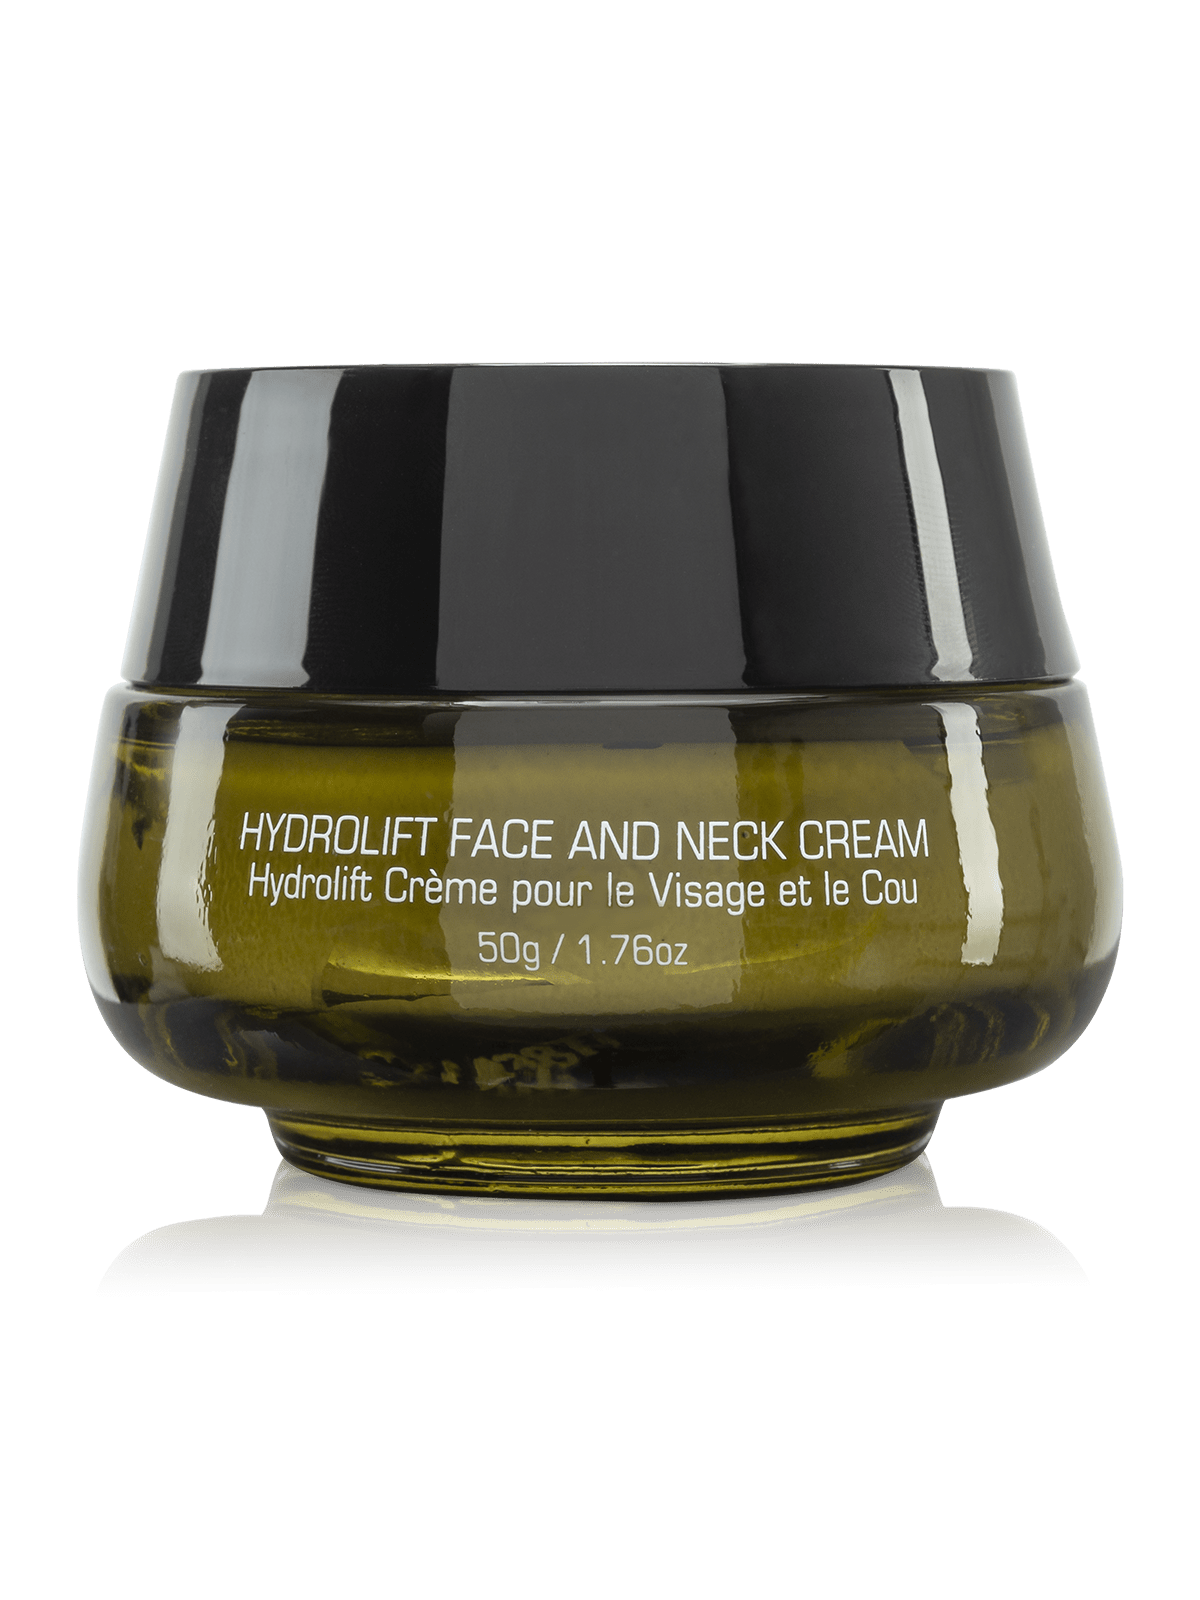 Hydrolift Face And Neck Cream back